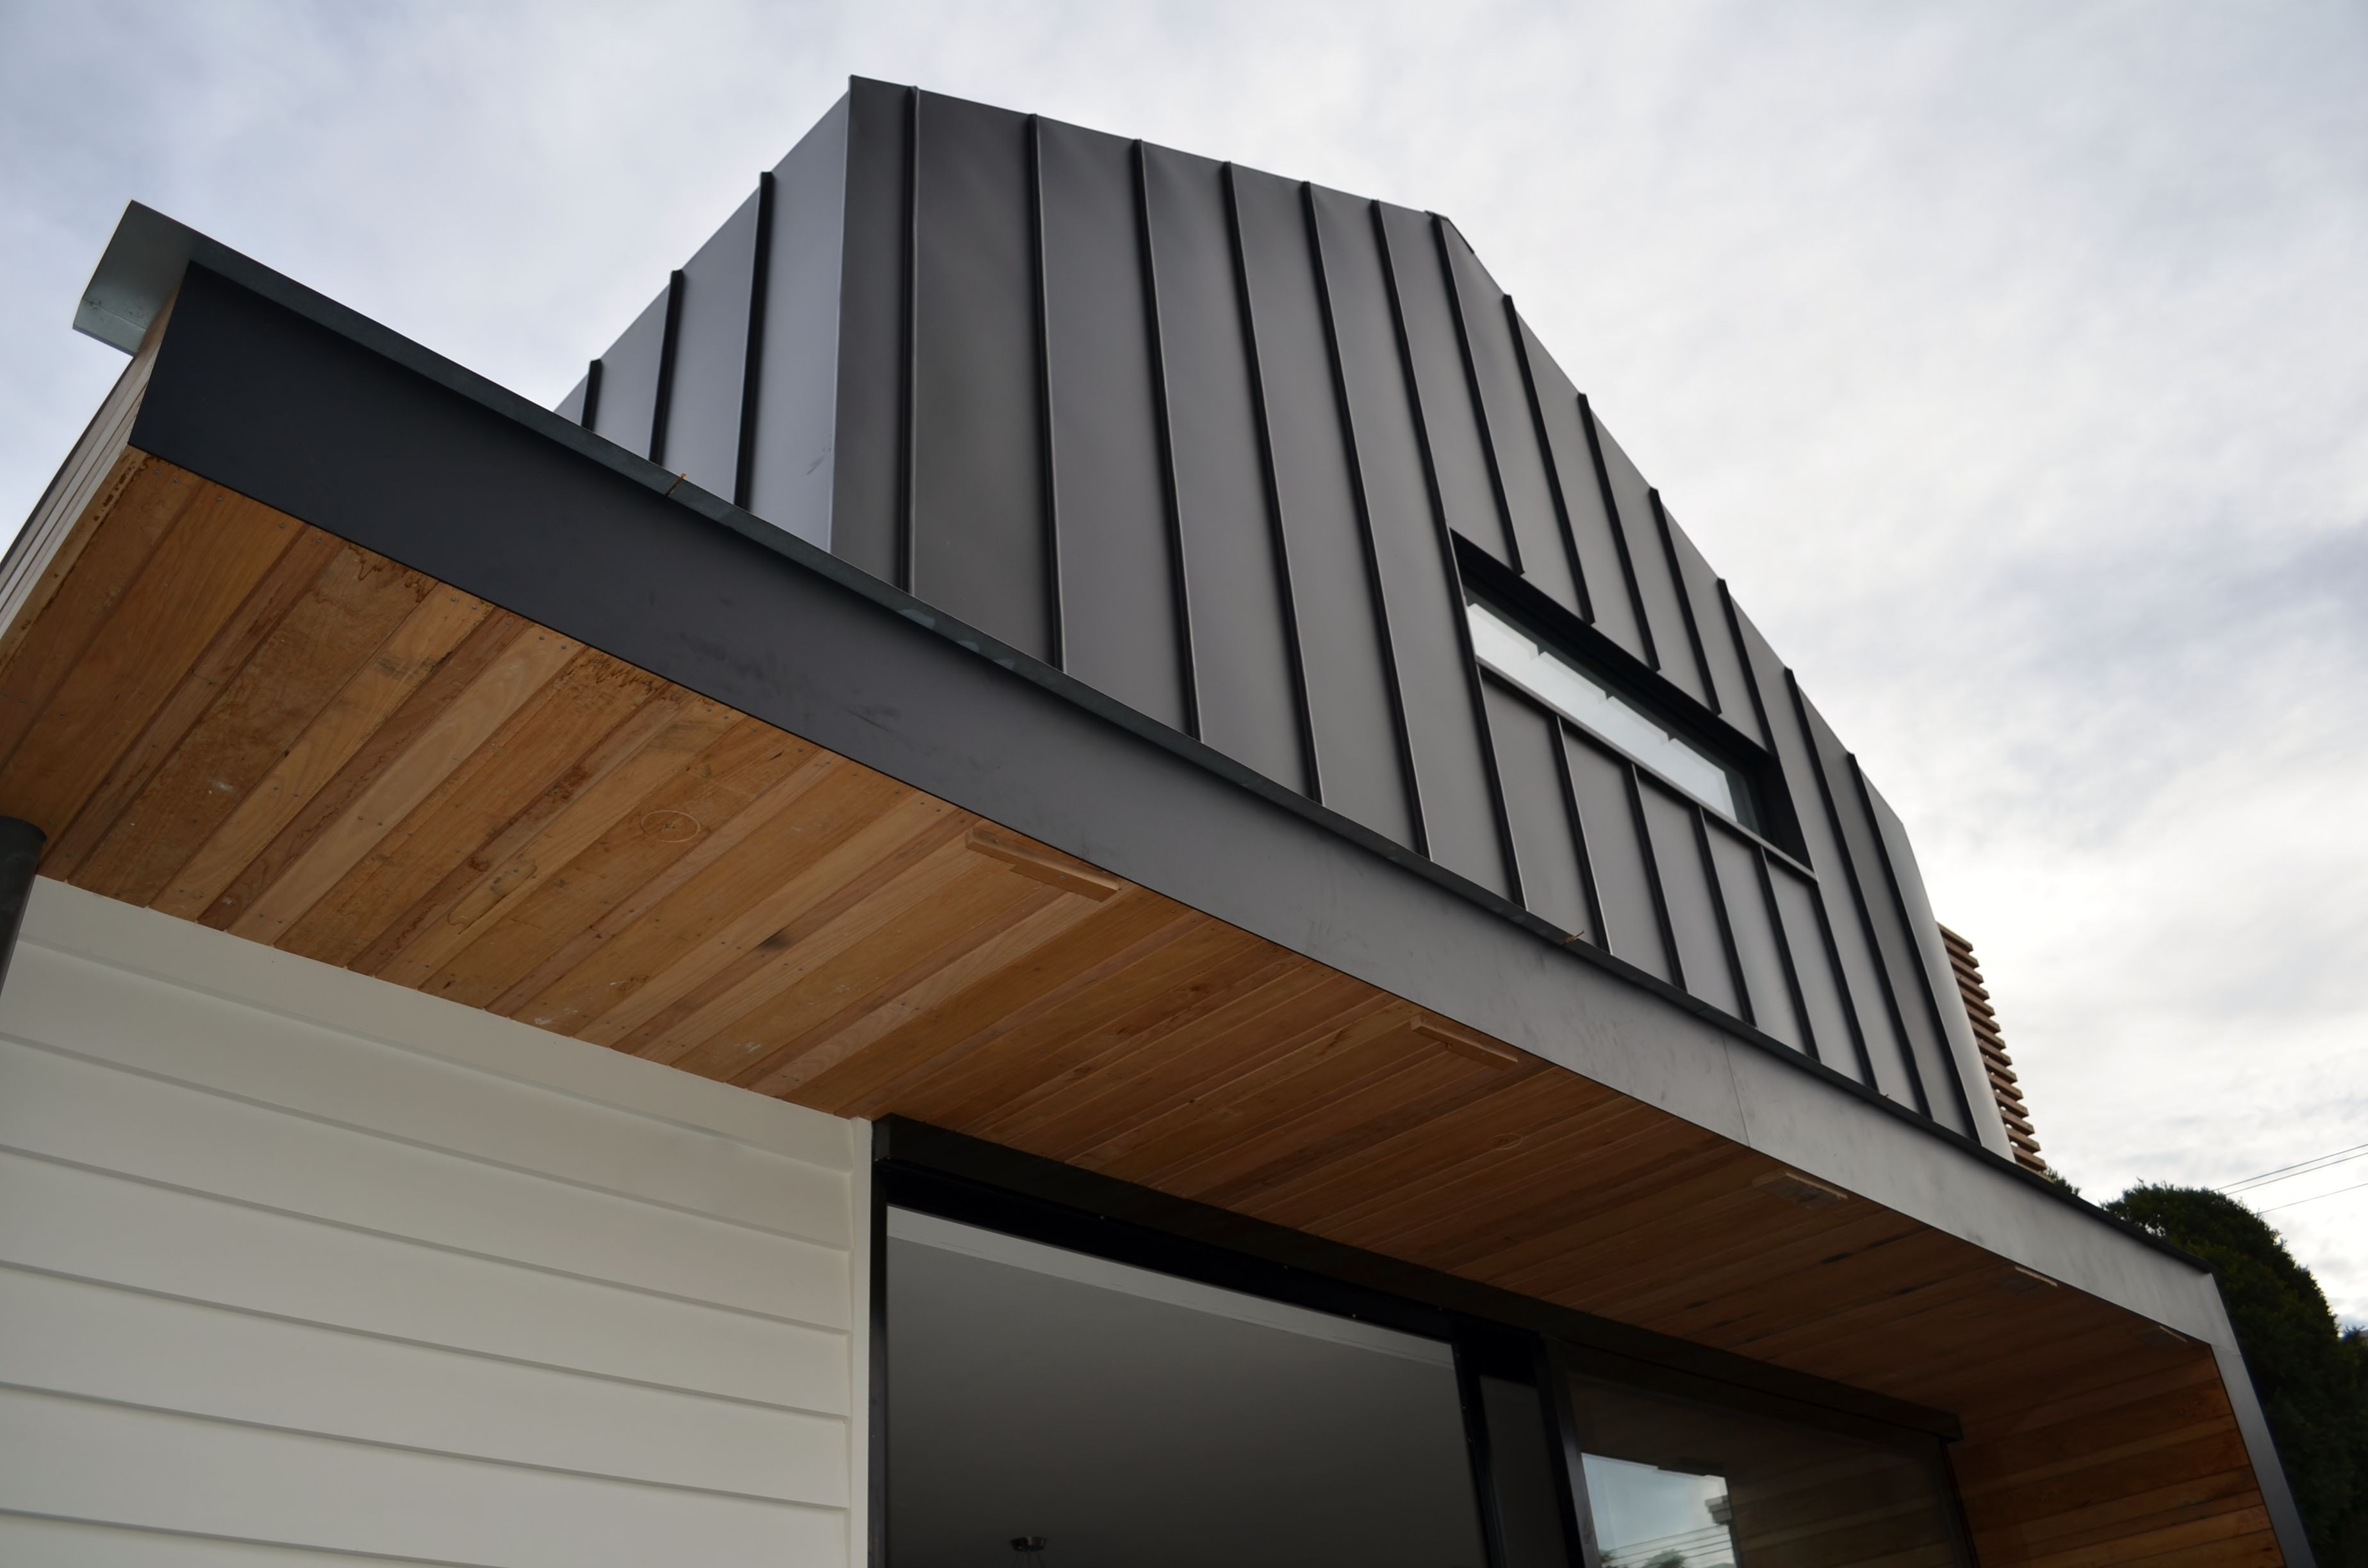 Design cladding we install a range of metal cladding systems using zinc copper aluminium - Unique timber batten cladding for interior and exterior use ...